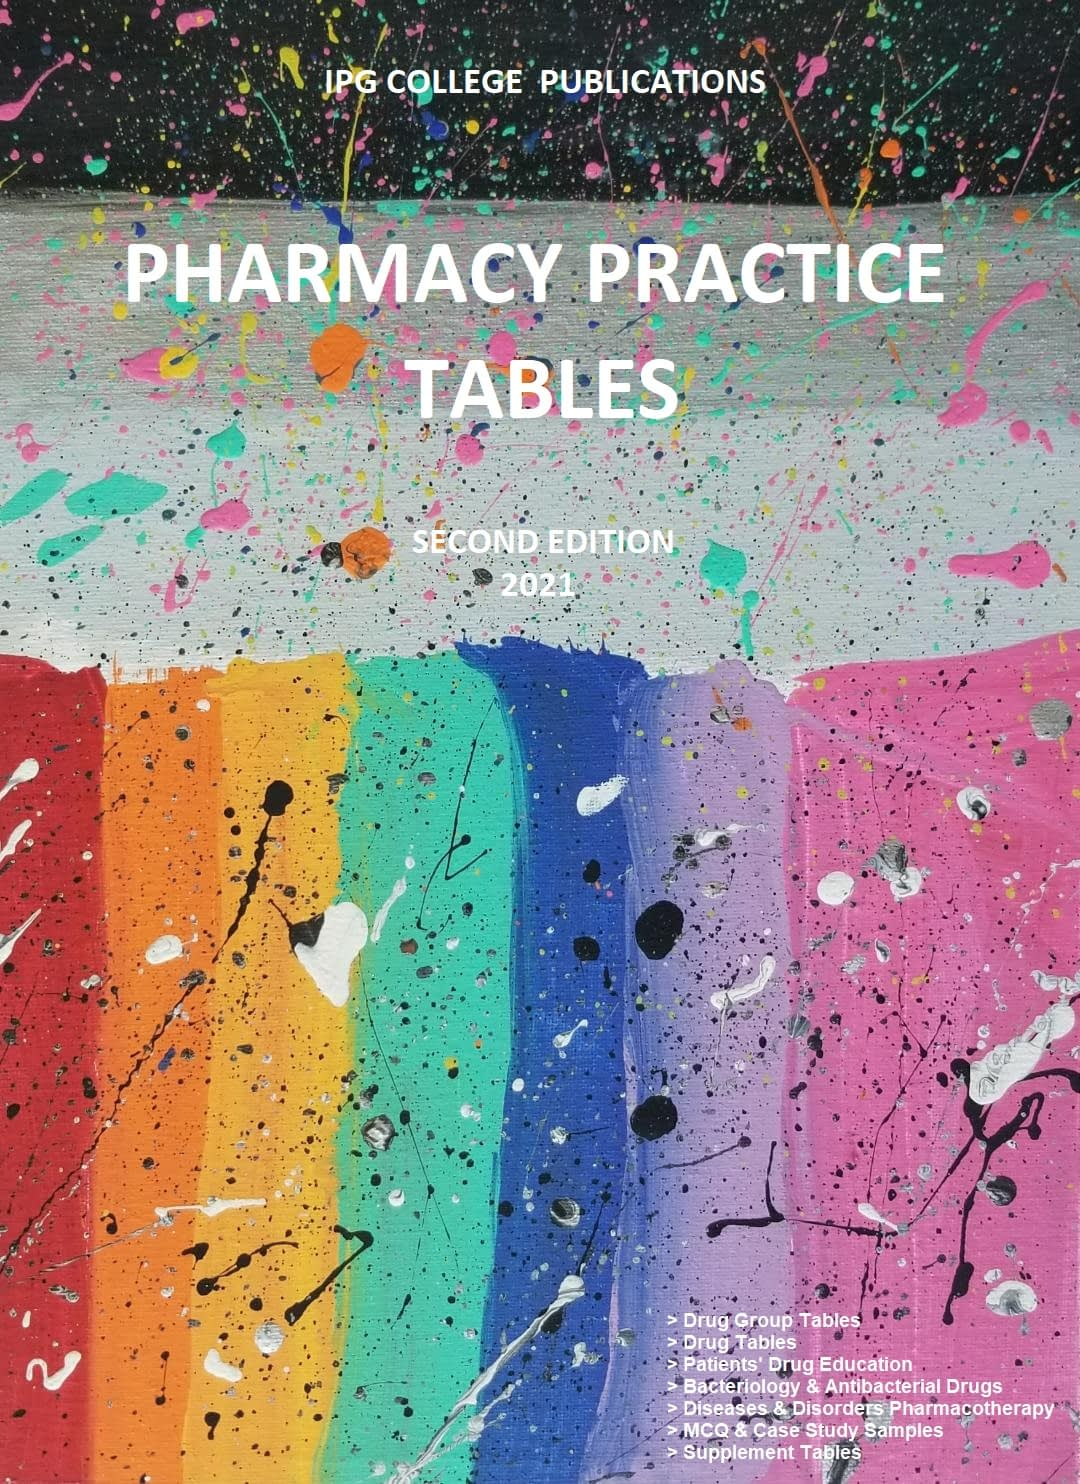 Pharmacy Practice Tables (PPT)